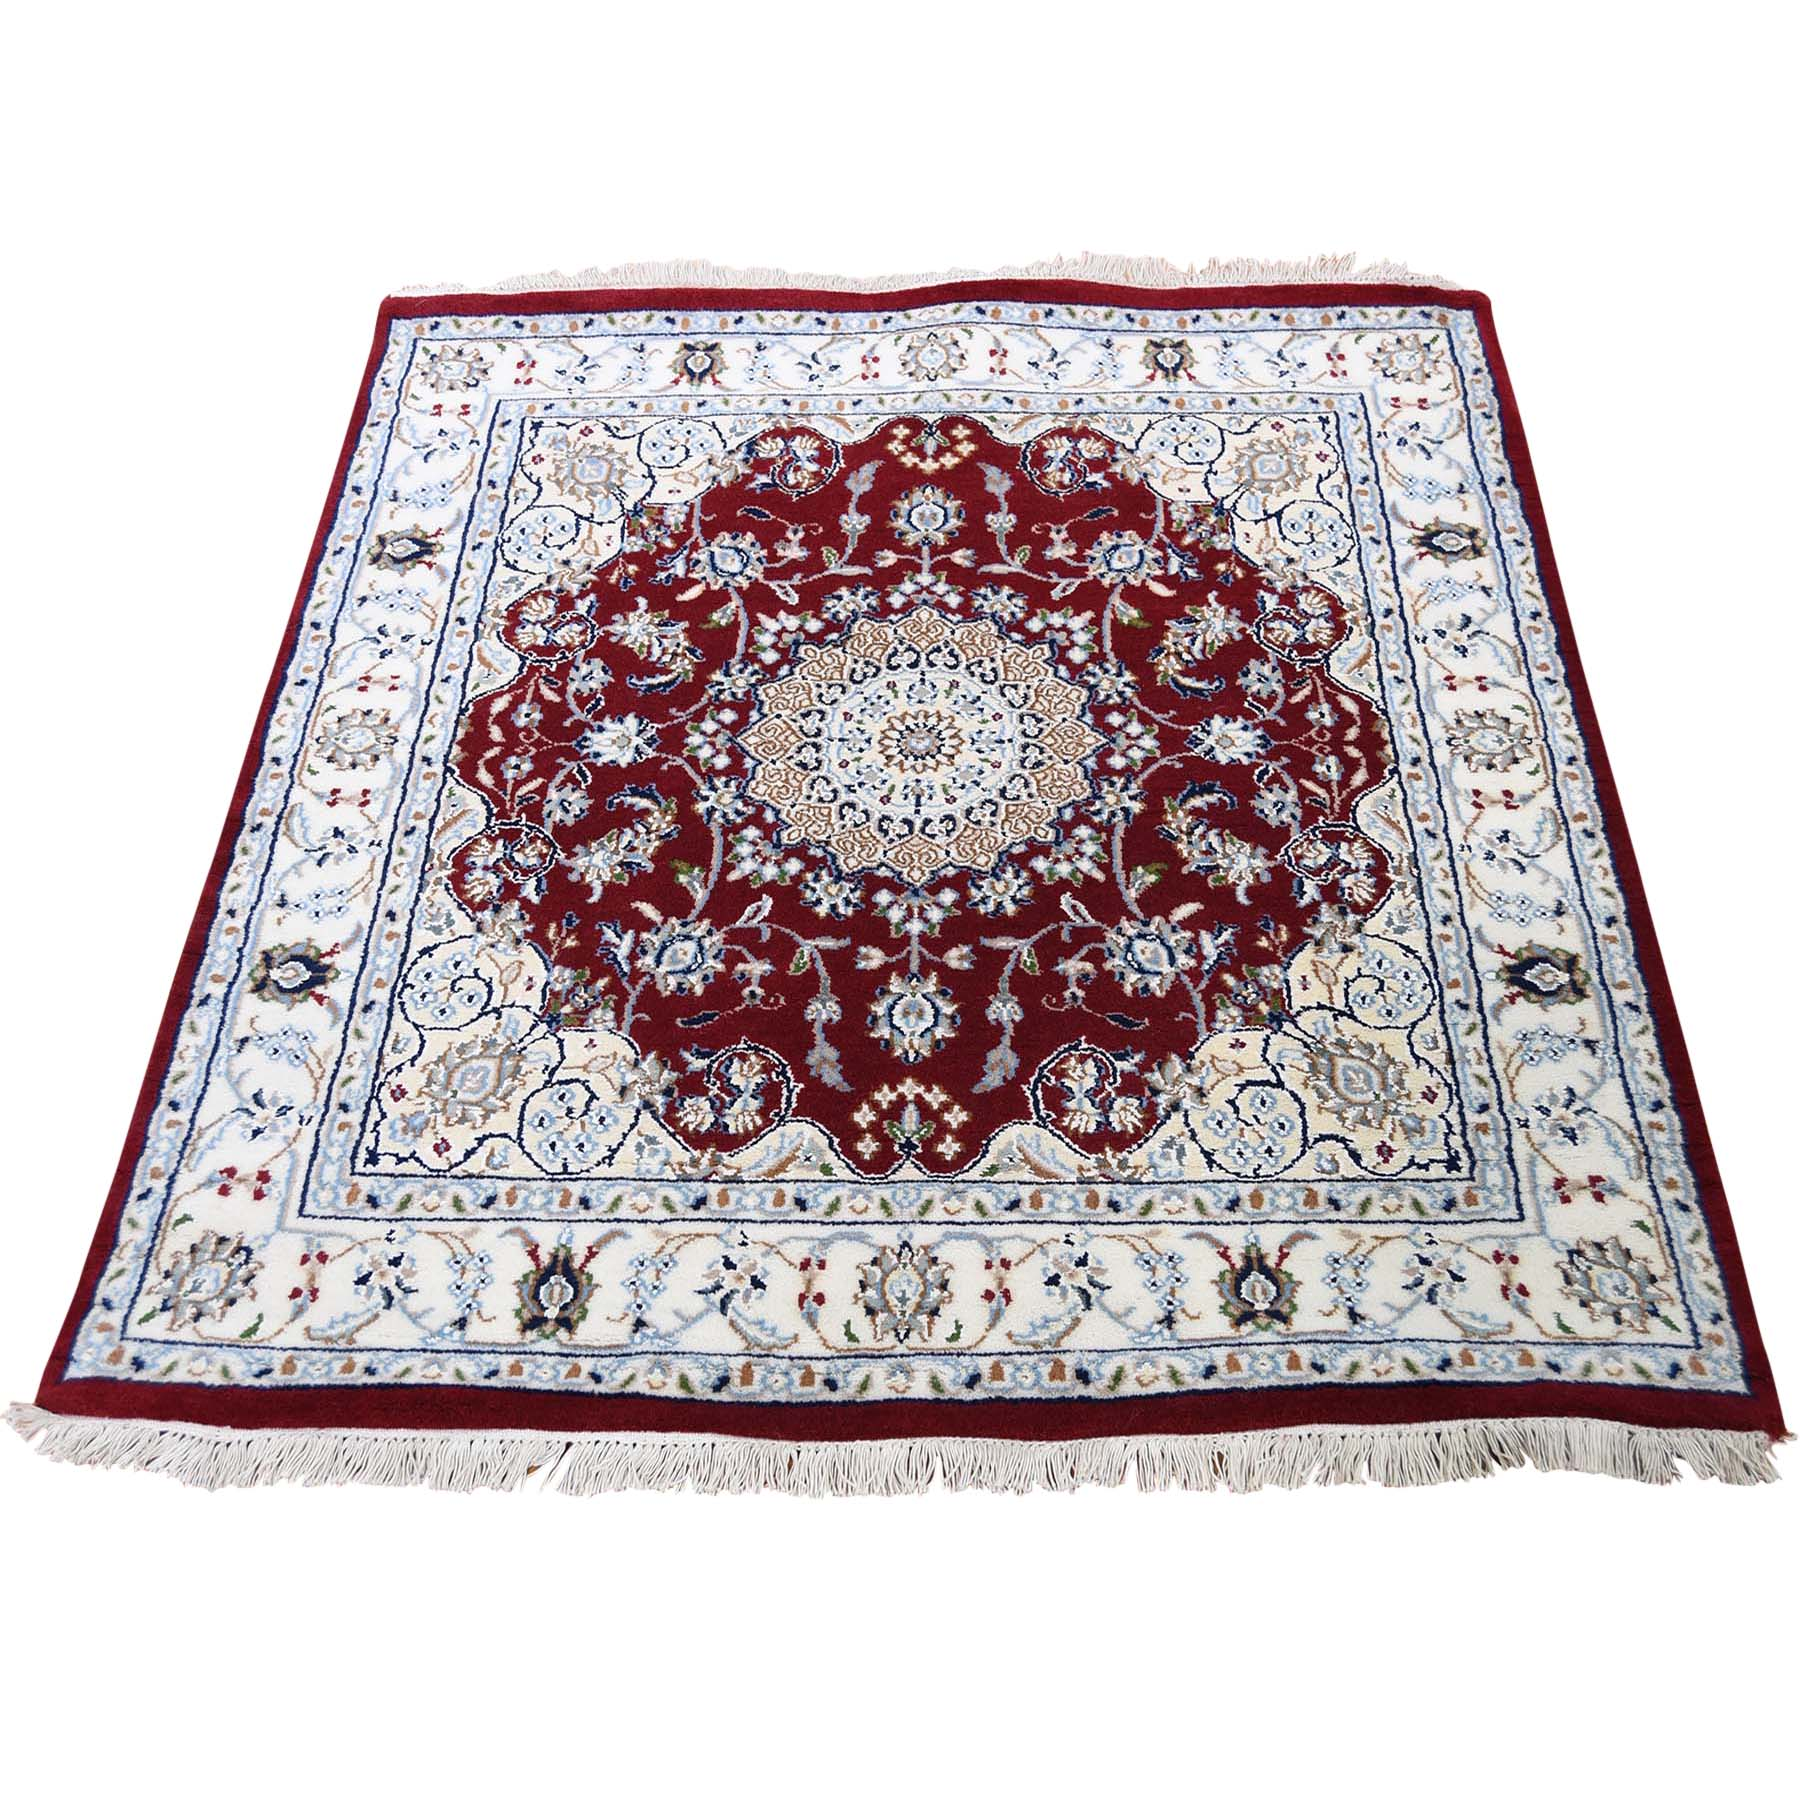 Pirniakan Collection Hand Knotted Red Rug No: 192316